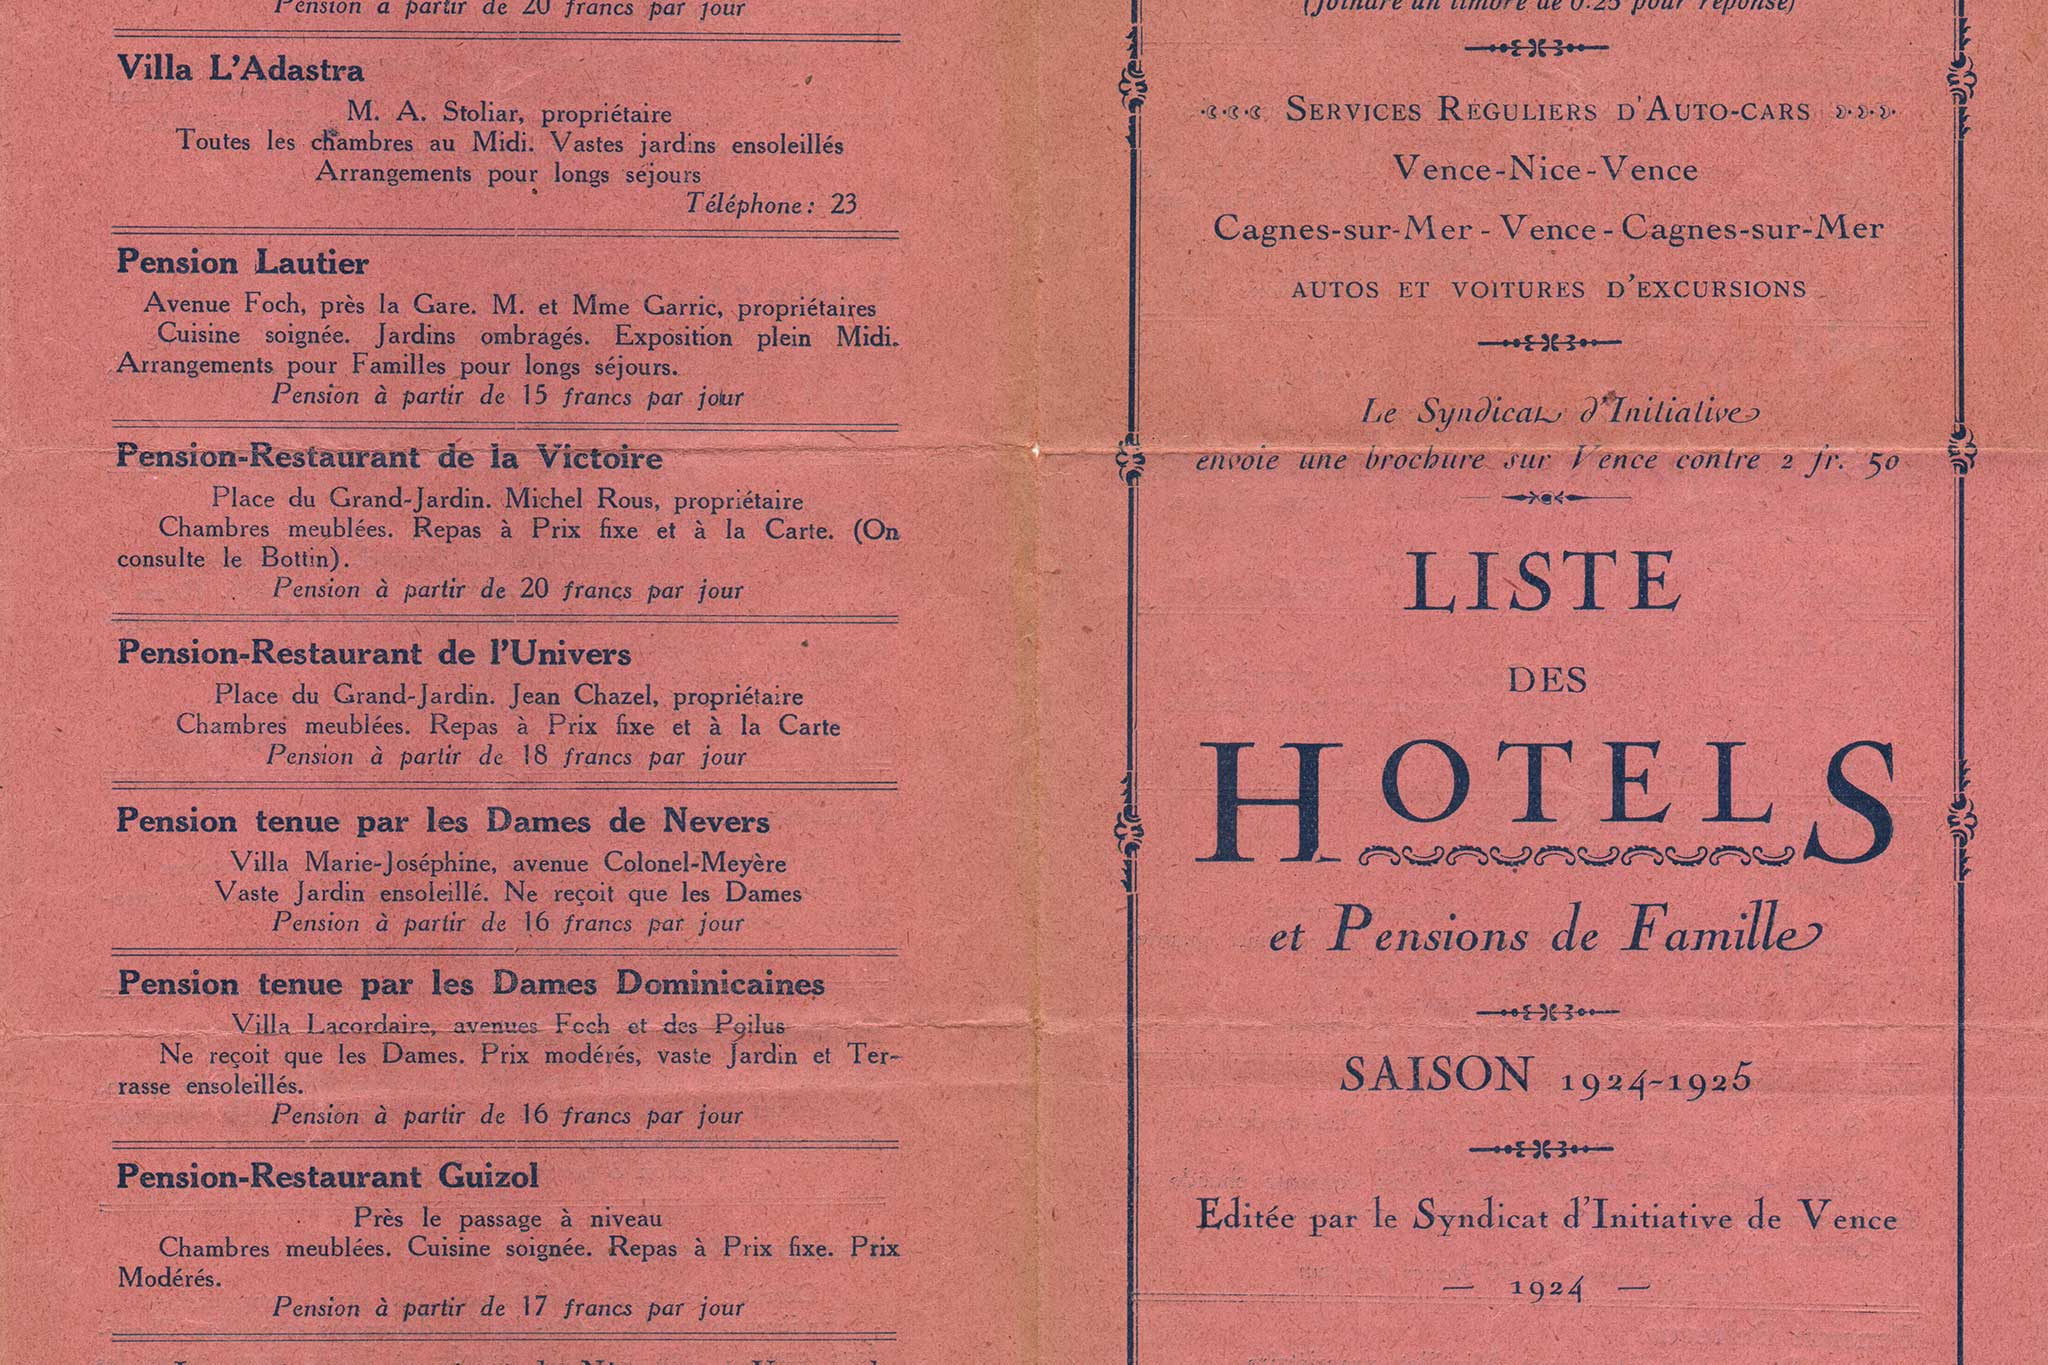 Steve and Carole in Vence - Vence List of Hotels from 1924